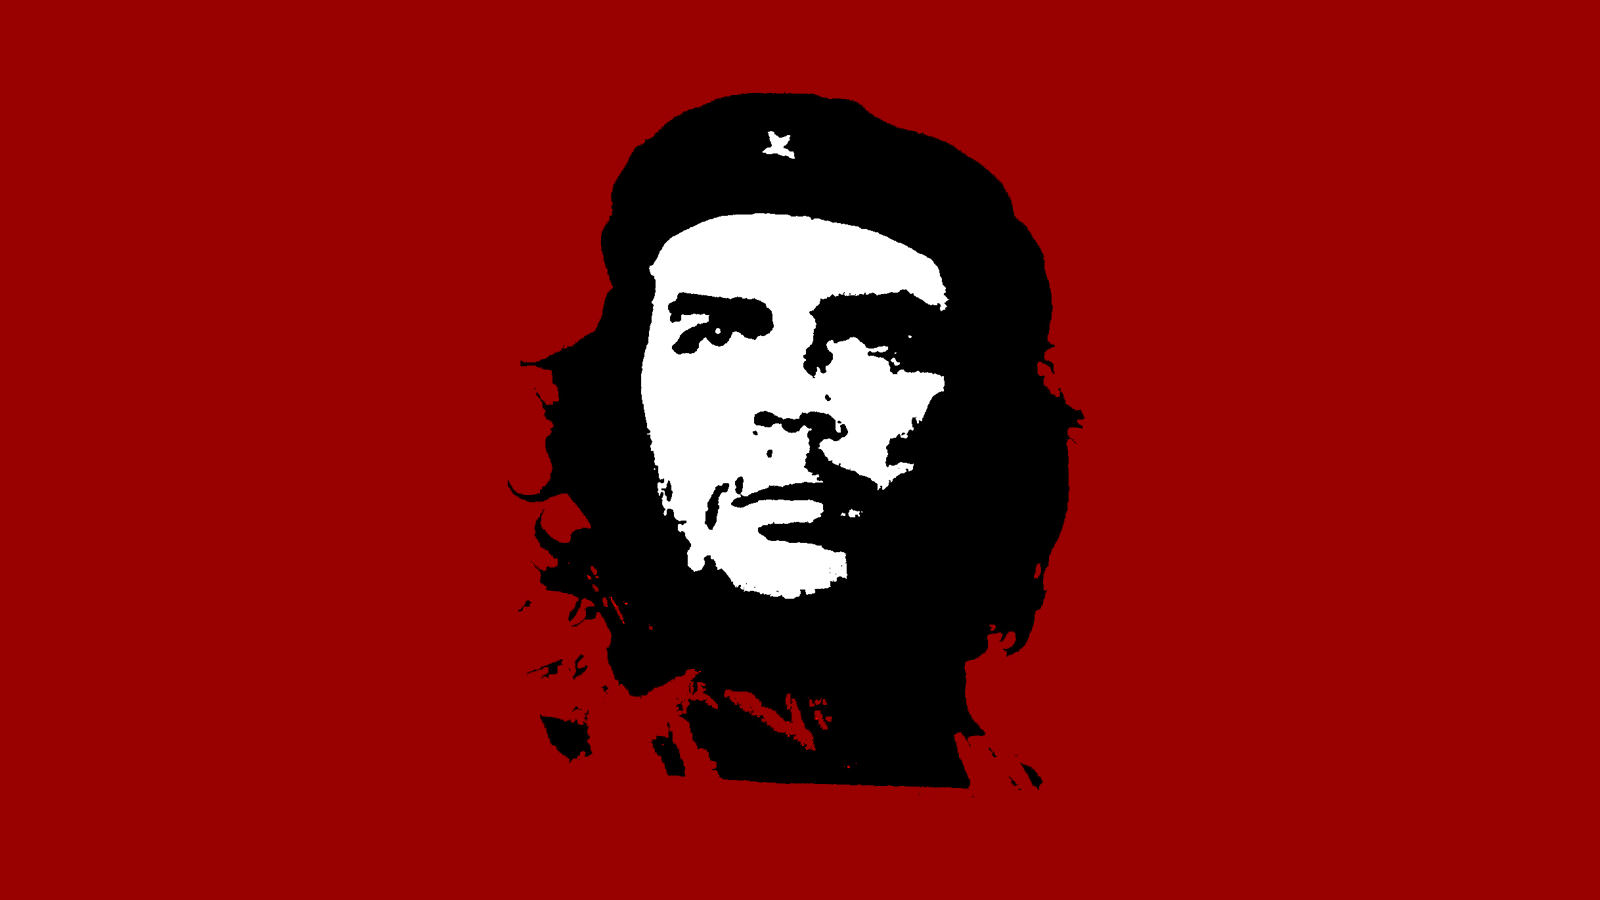 ernesto che guevara s impact on society Che guevara questions including was che guevara a rapist and what is politics & society history history of ernesto che guevara was put to death by.